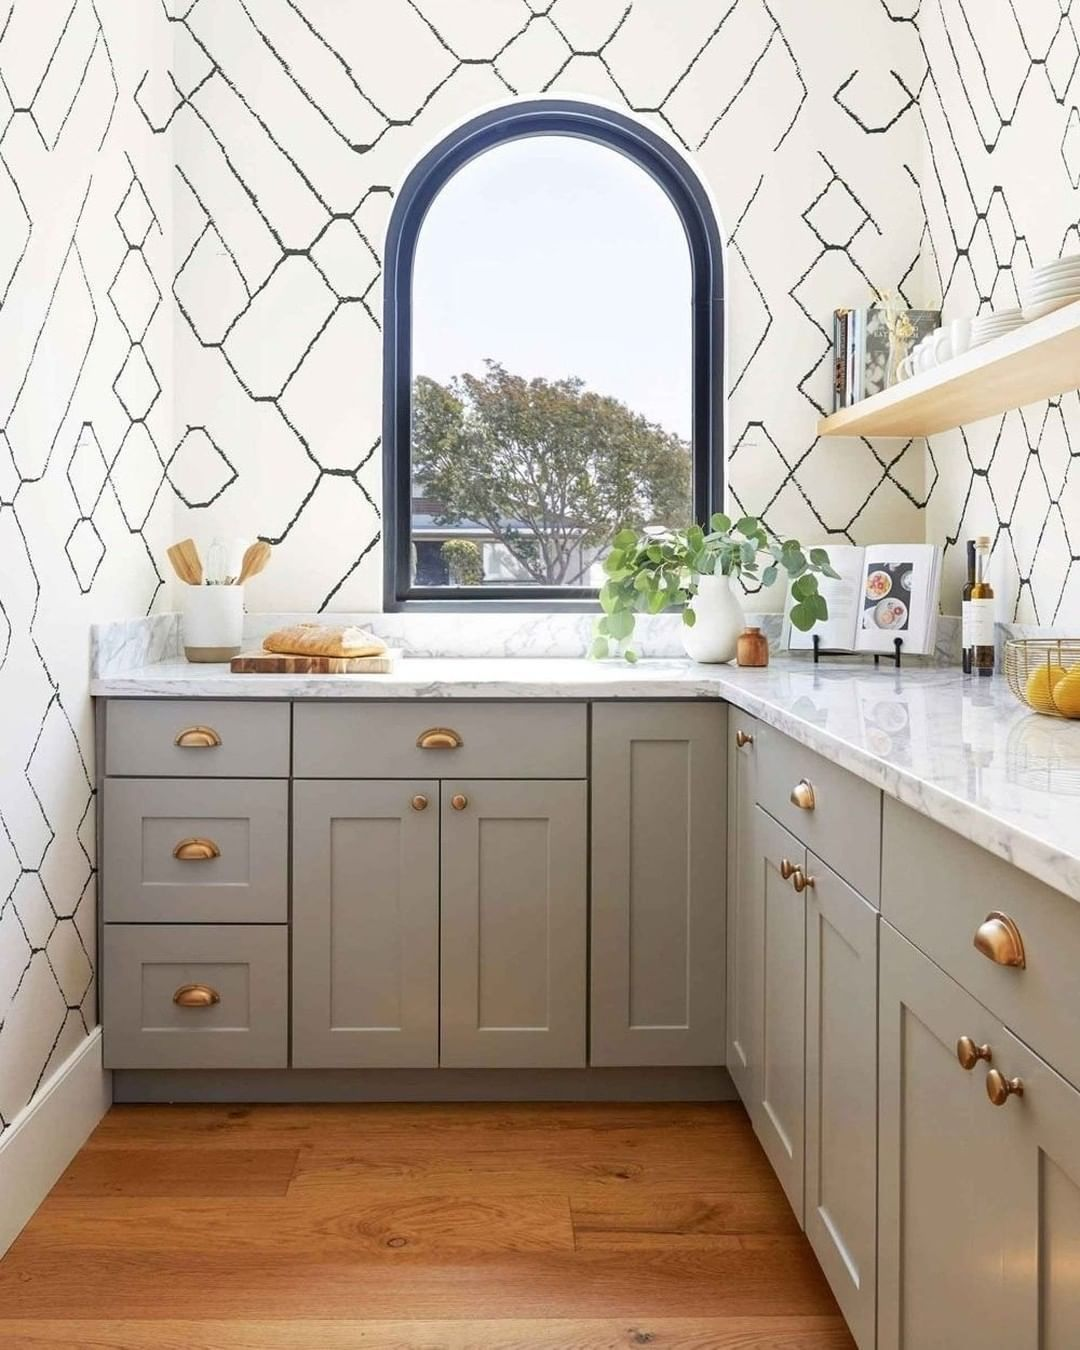 Lulu And Georgia On Instagram Wallpaper In The Kitchen Is Always A Good Idea In 2020 Moroccan Wallpaper Kitchen Wallpaper Moroccan Kitchen